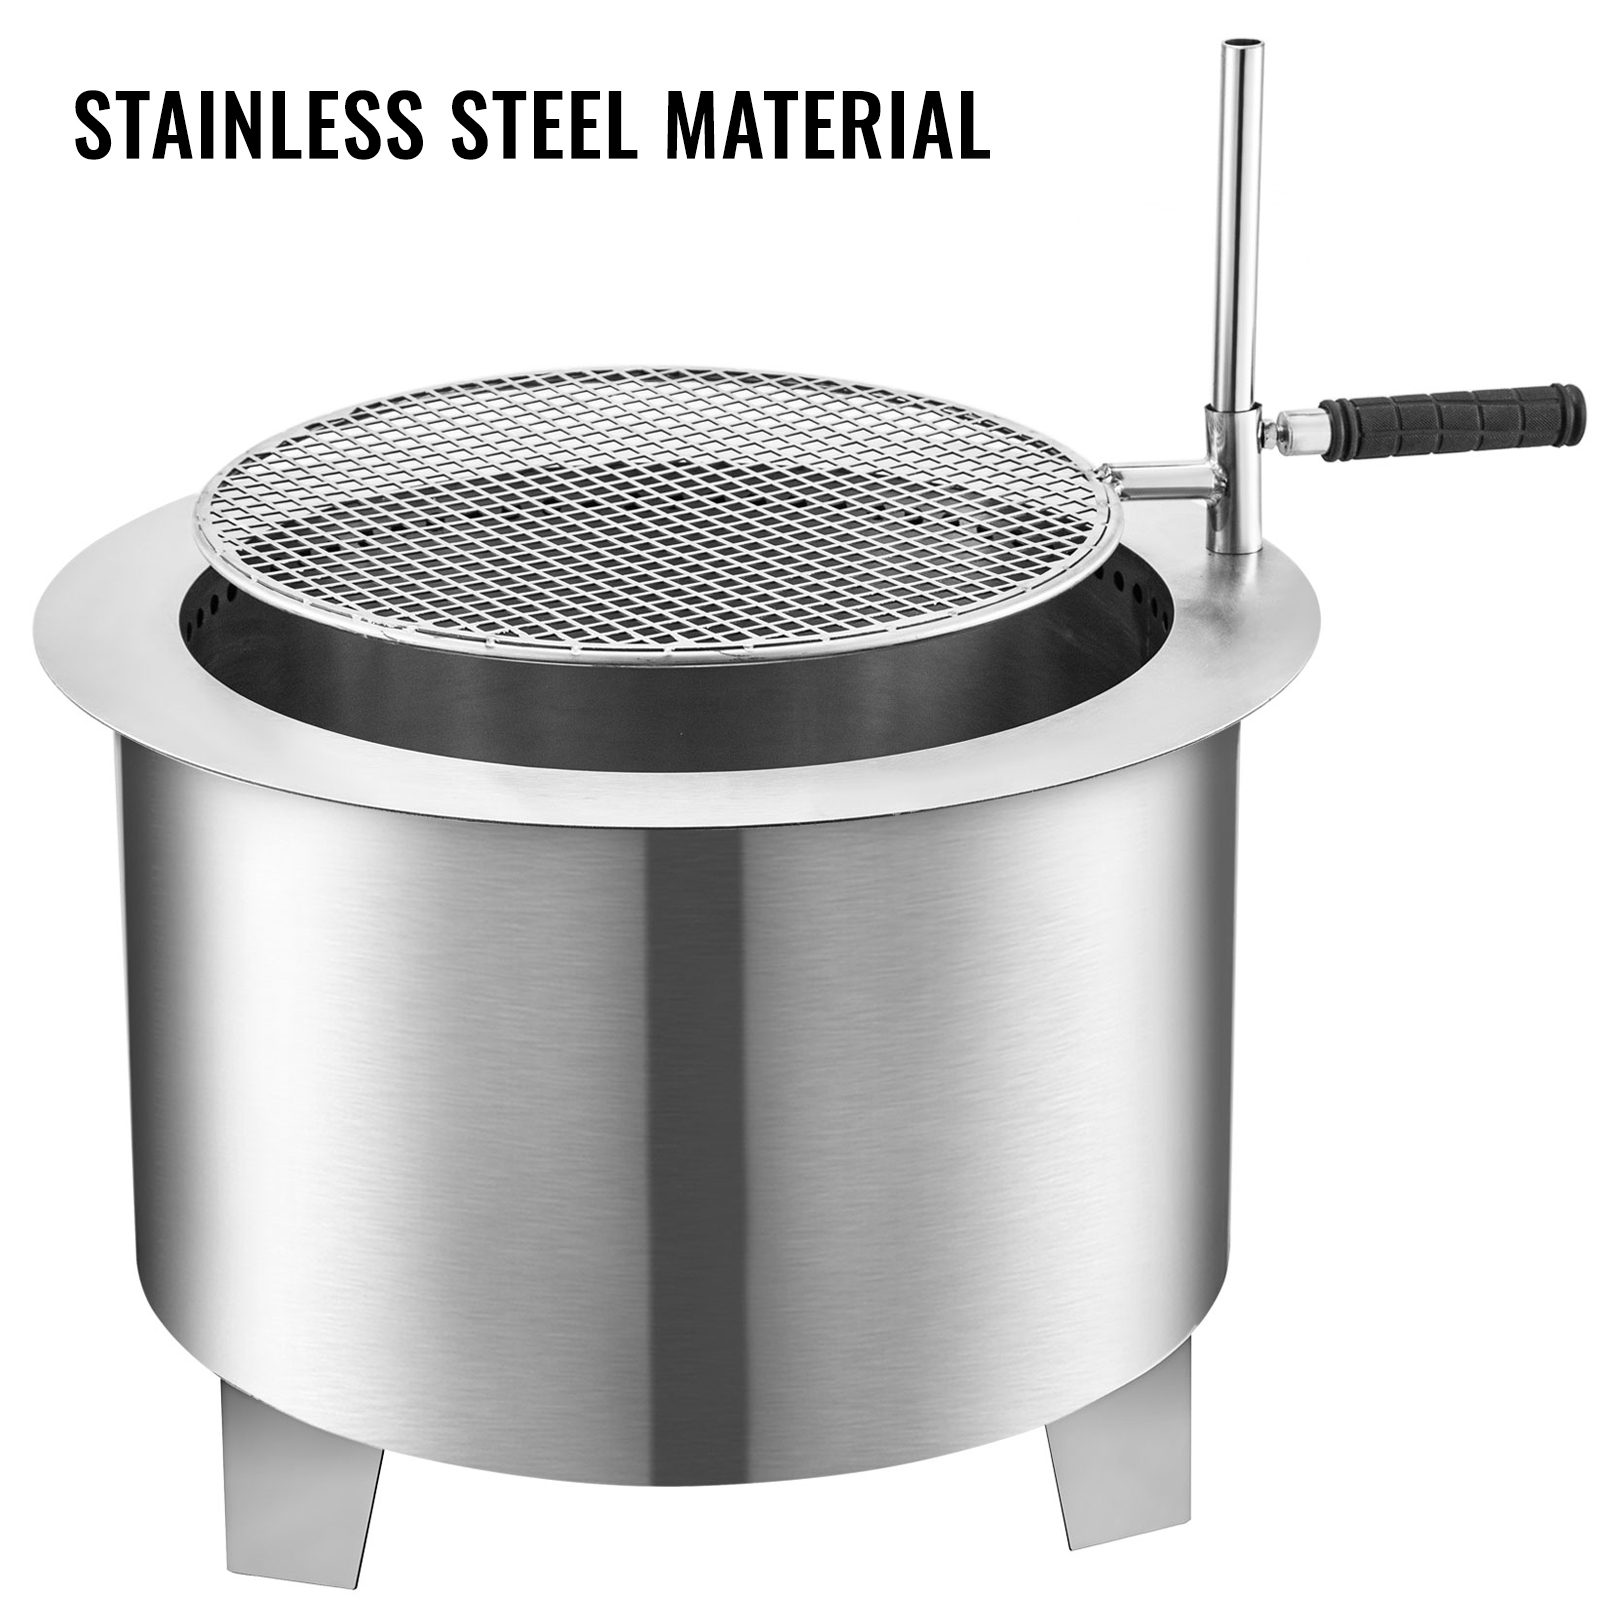 NICEXMAS 2Pcs Outdoor Fire Pit Stainless Steel Portable Fire Pits Burn Barrel Incinerator Wood Burning and Low Smoke for Home Yard